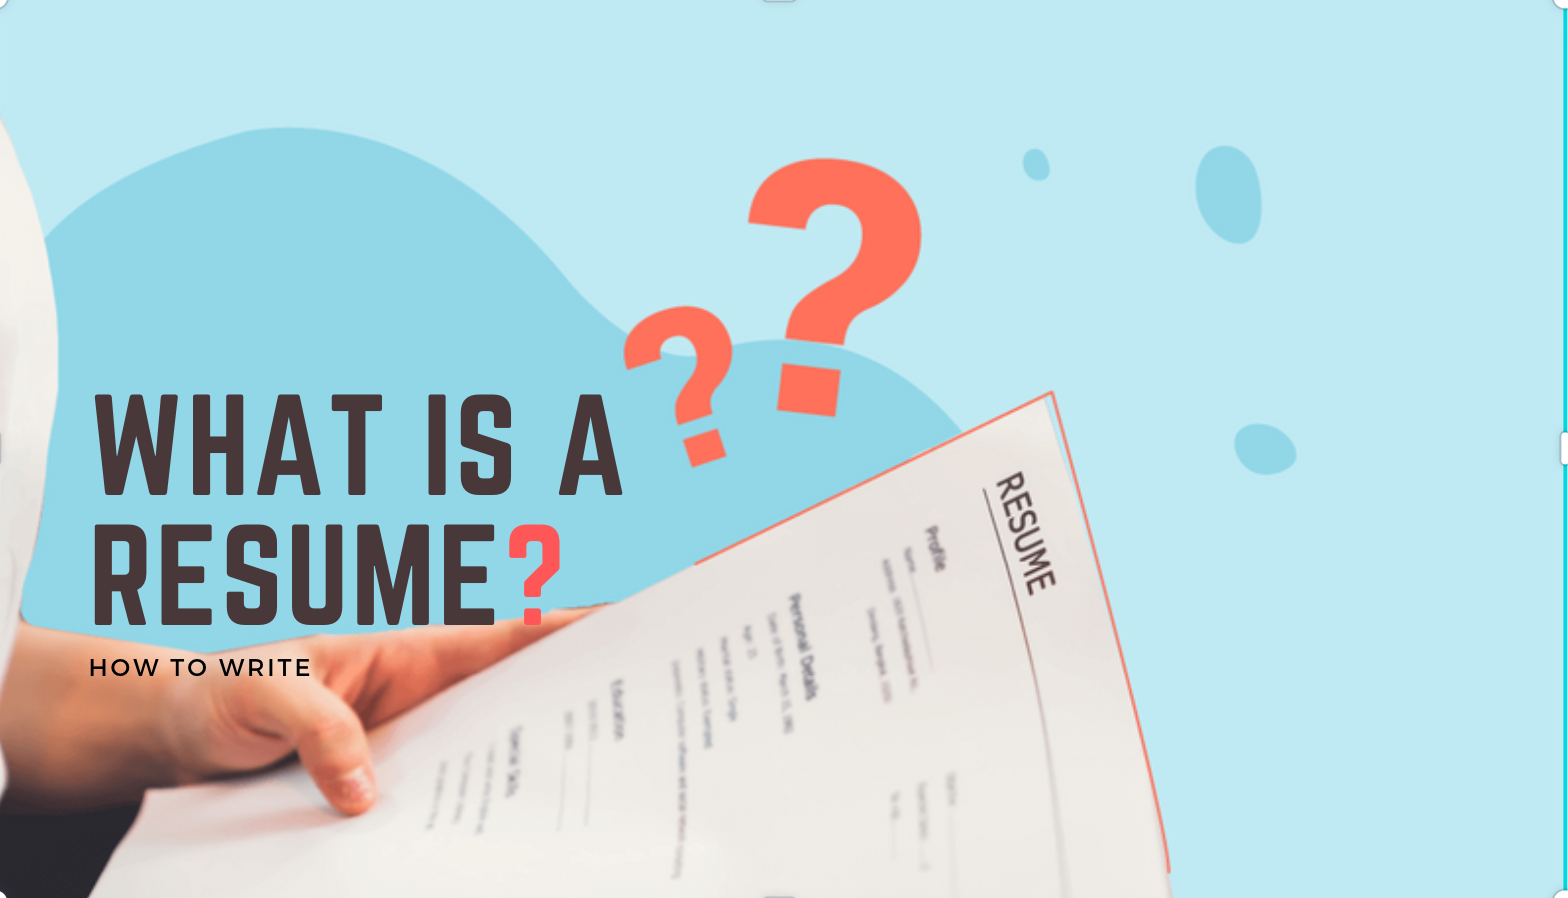 what is a resume,what is a resume for a job, what is a resume?, what is the purpose of a resume